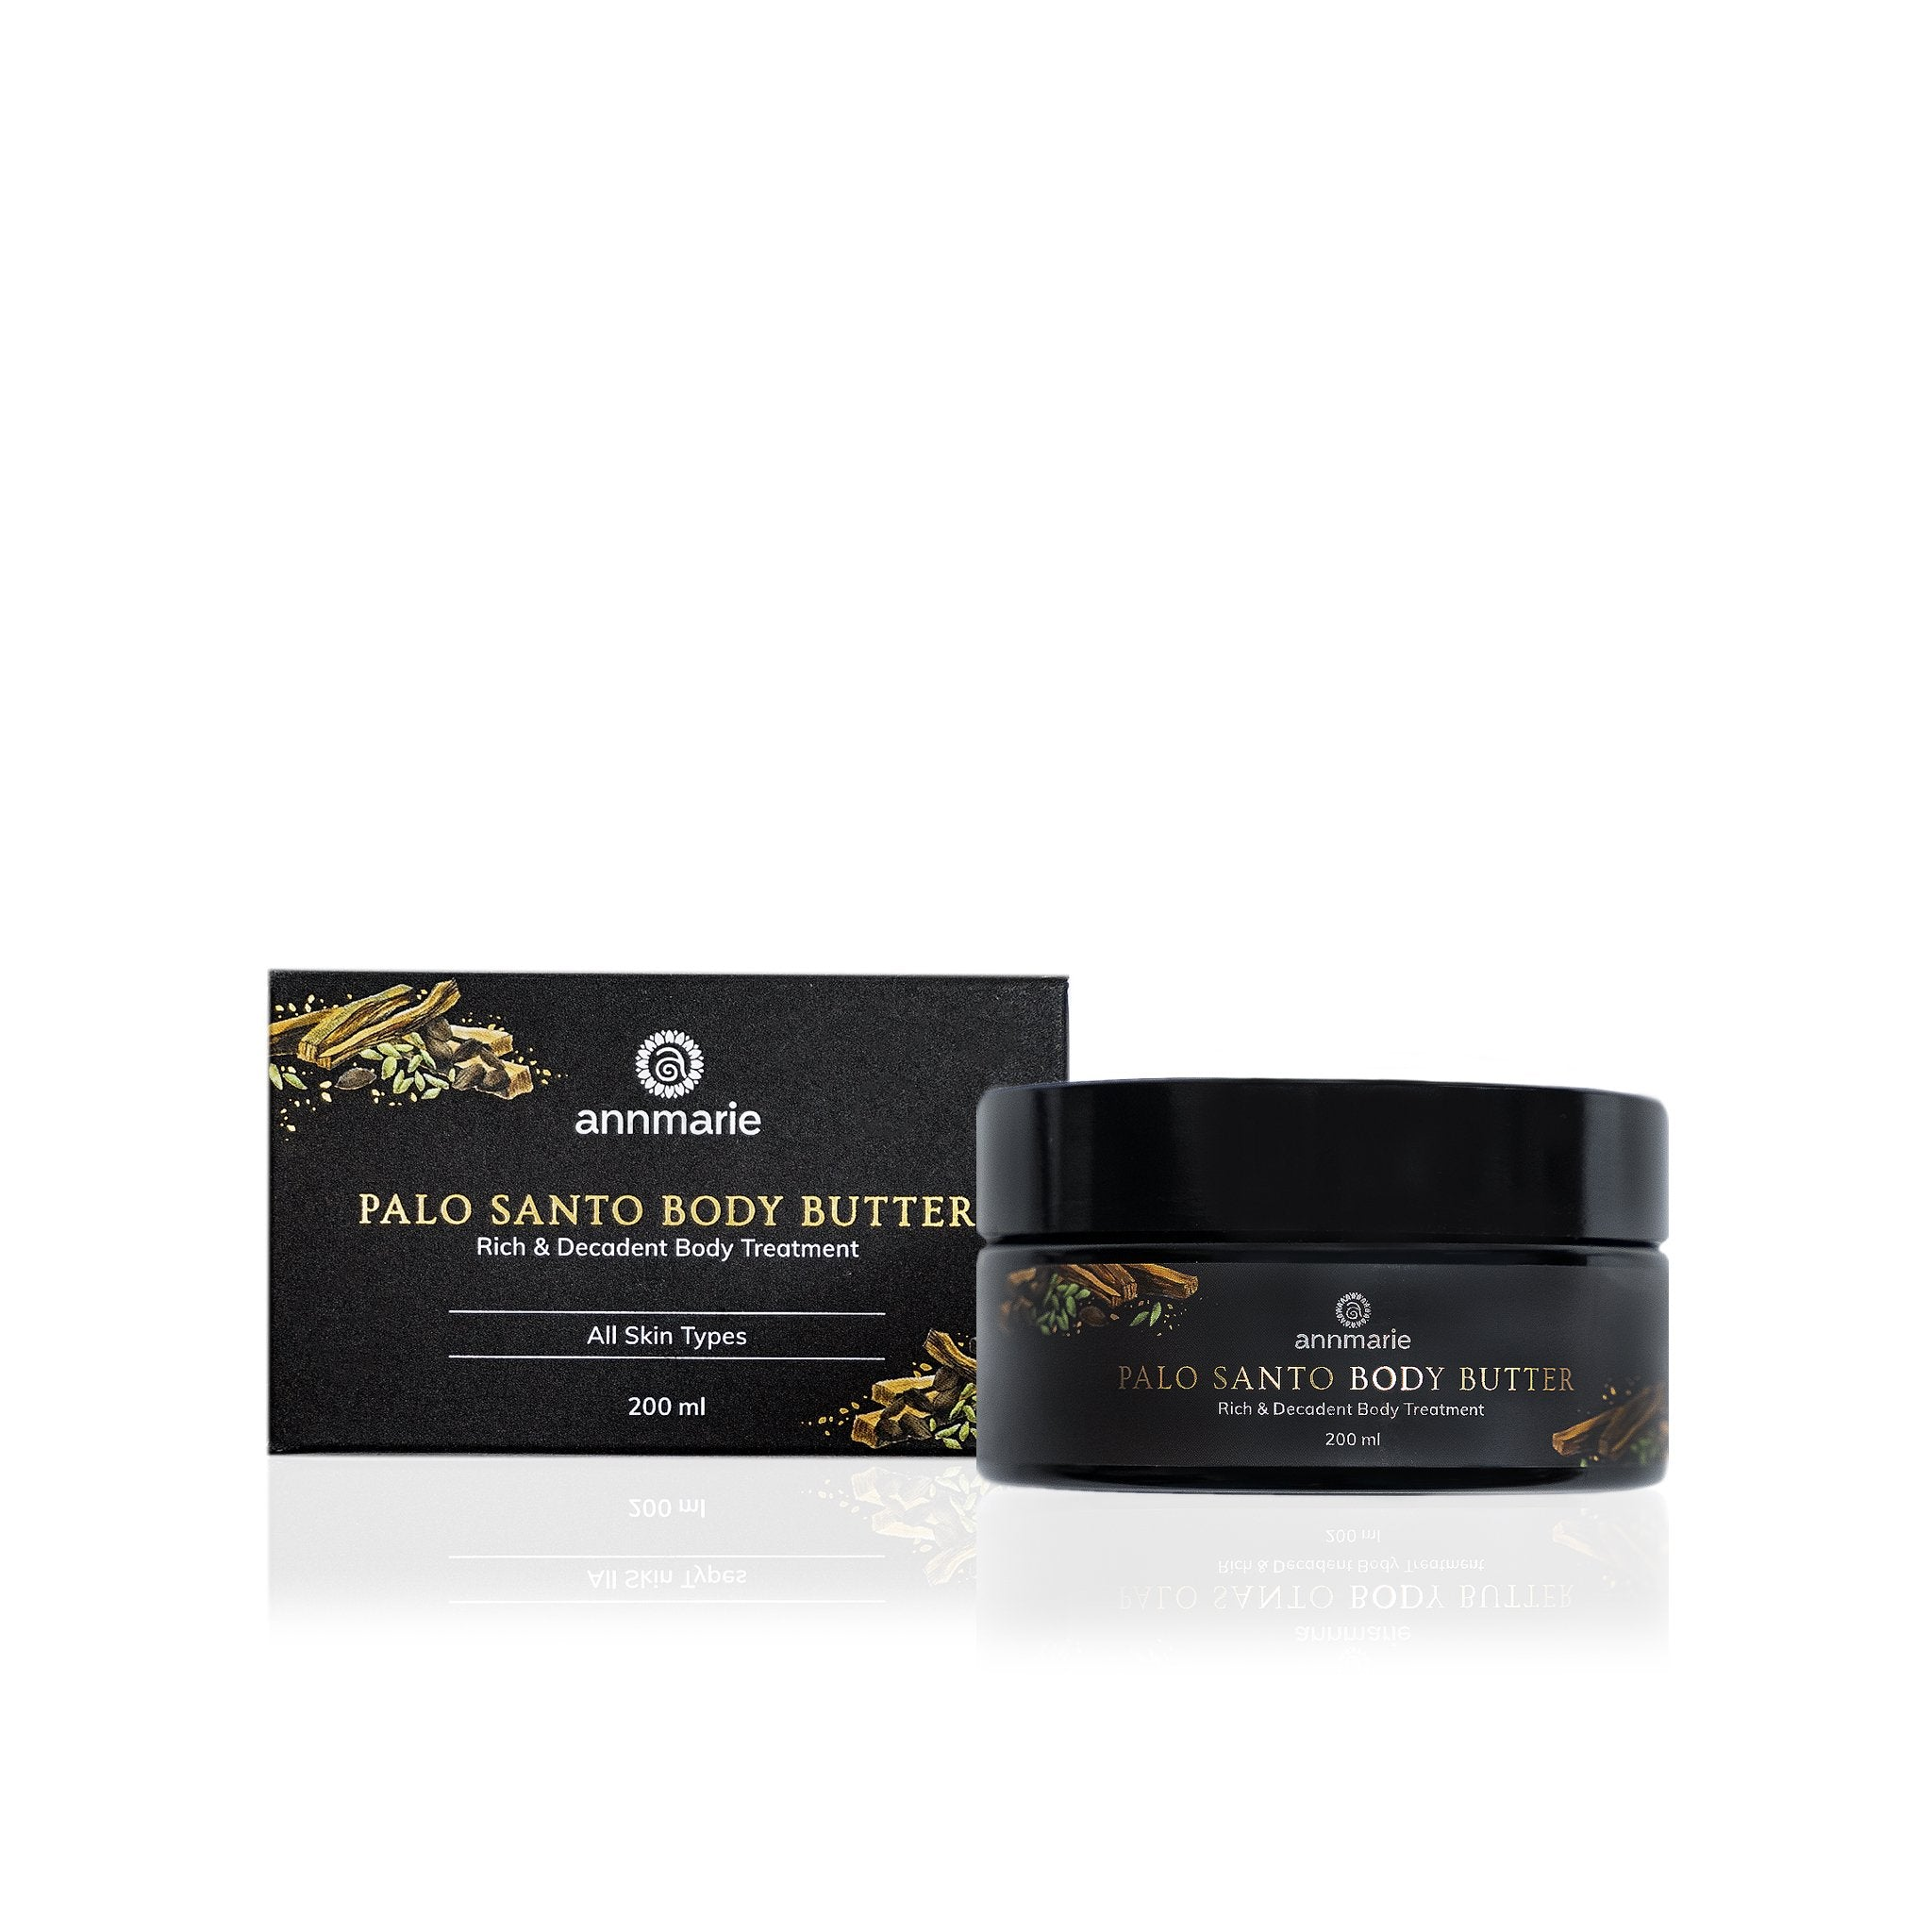 Palo Santo Body Butter- Rich & Decadent Body Treatment (Sample size)